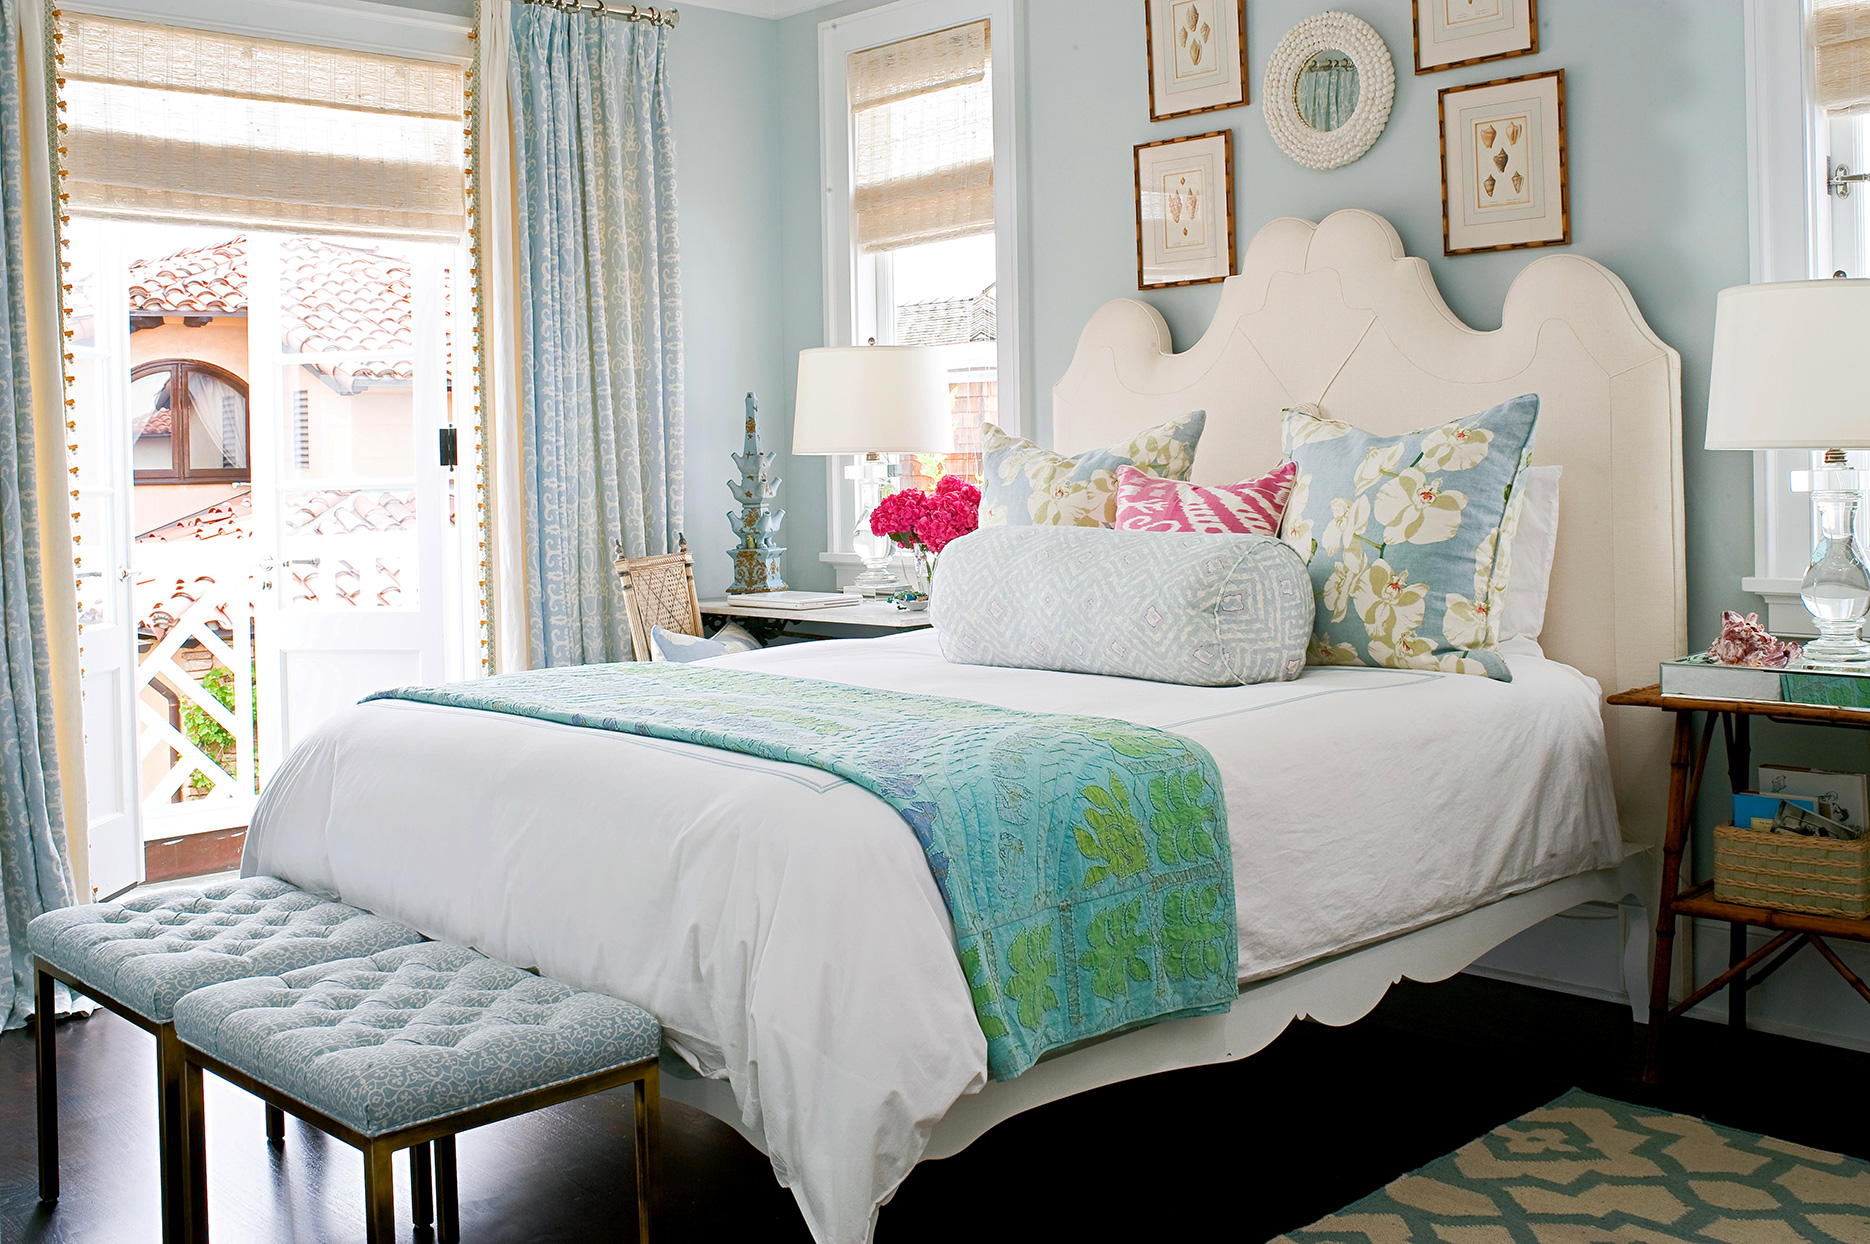 bright bedroom with white, blue and green color scheme